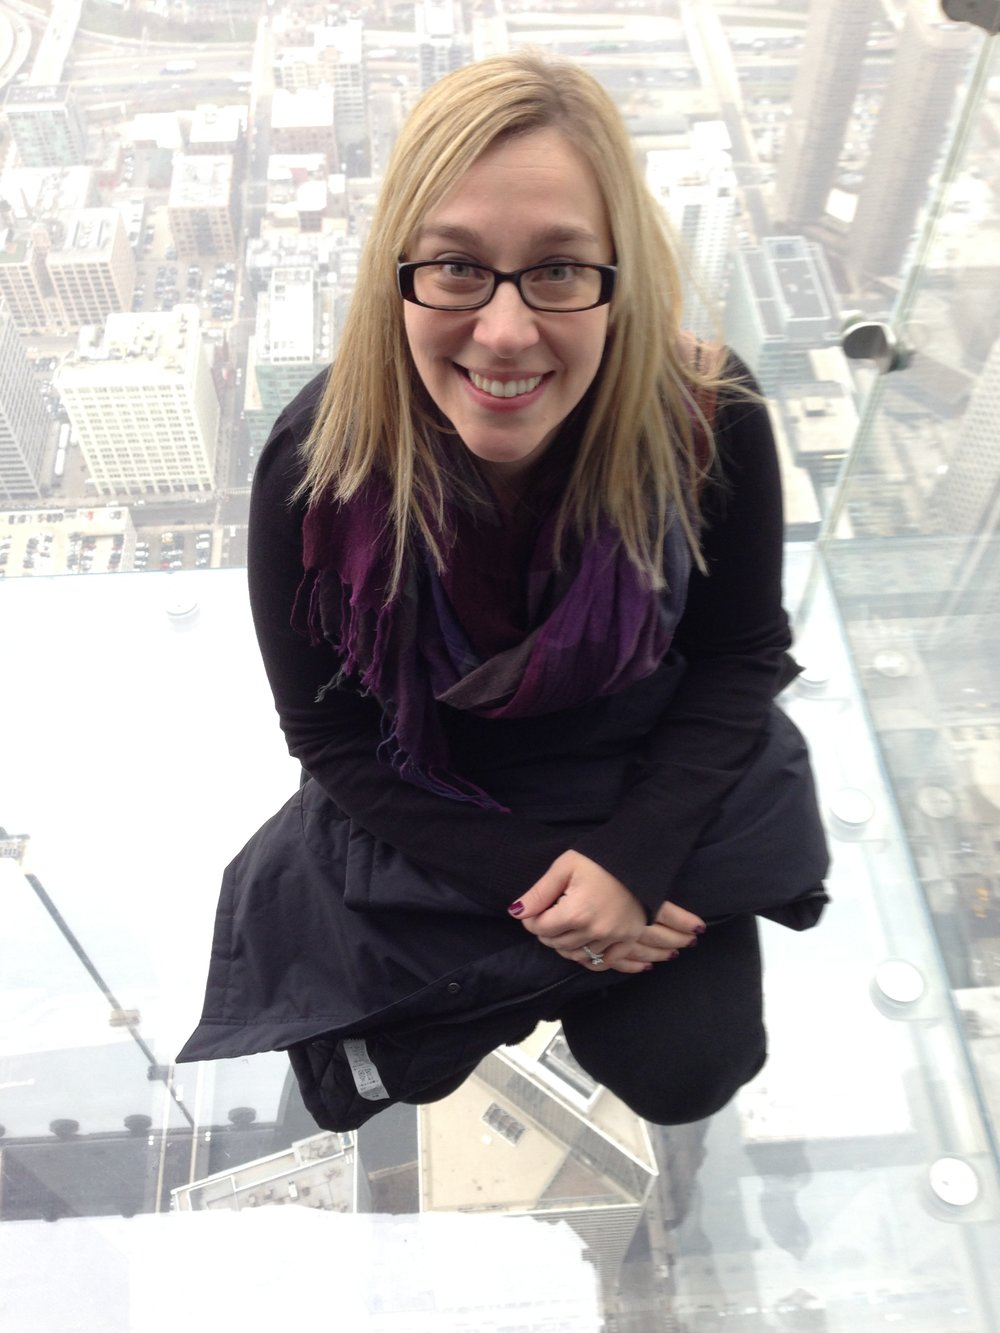 Steph, on the ledge of the Skydeck of the Willis Tower in  Chicago